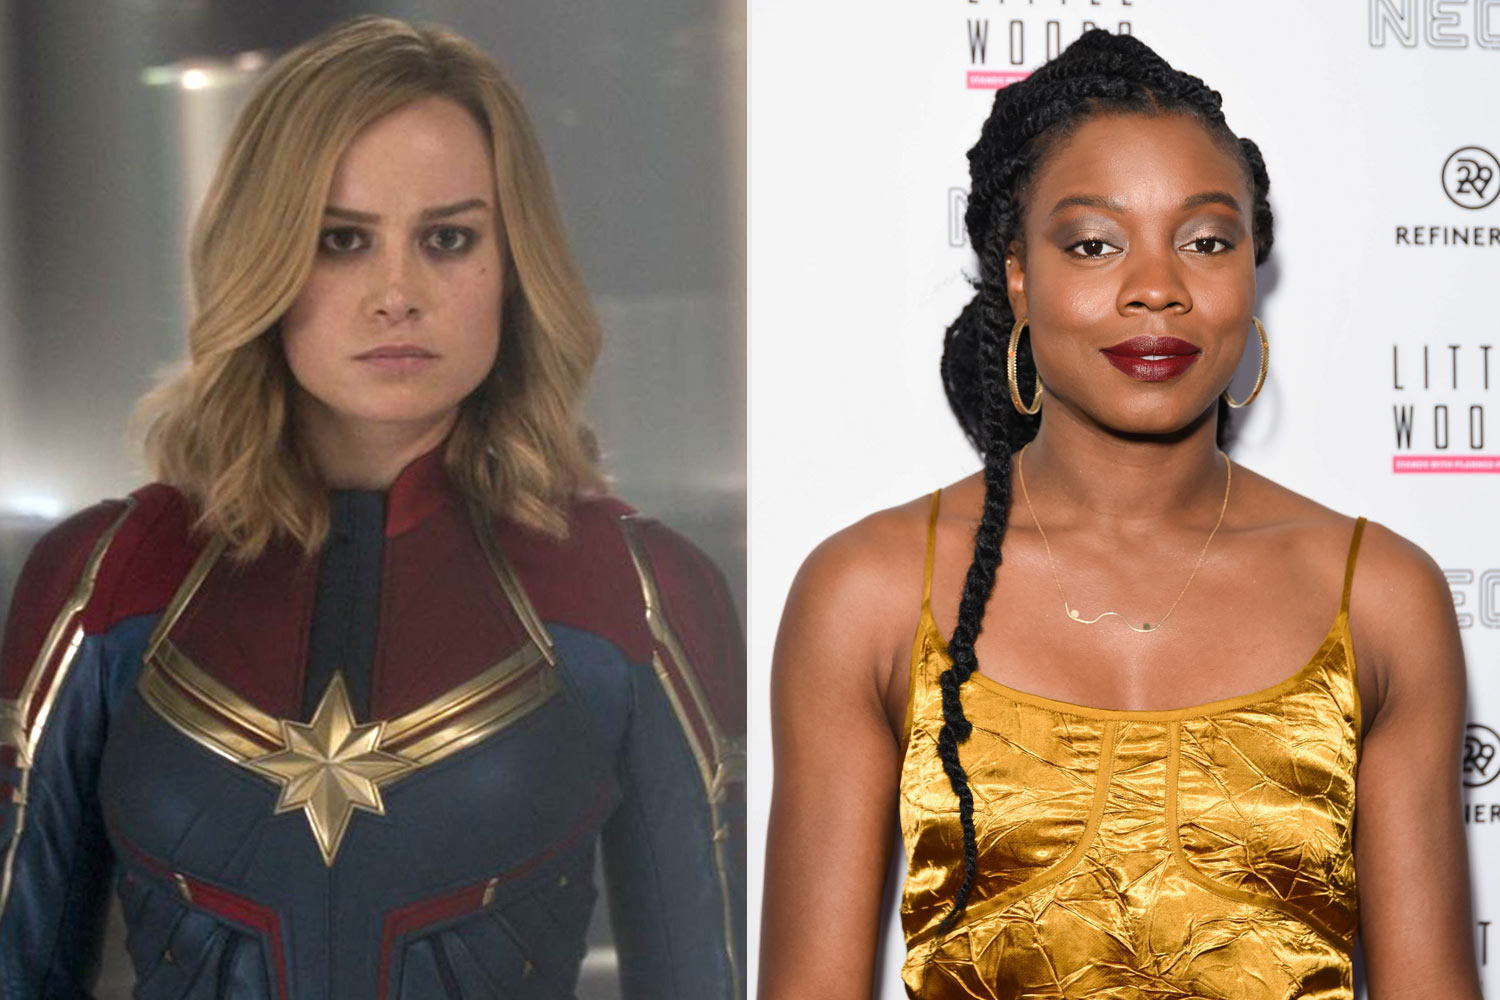 Brie Larson and Nia DaCosta